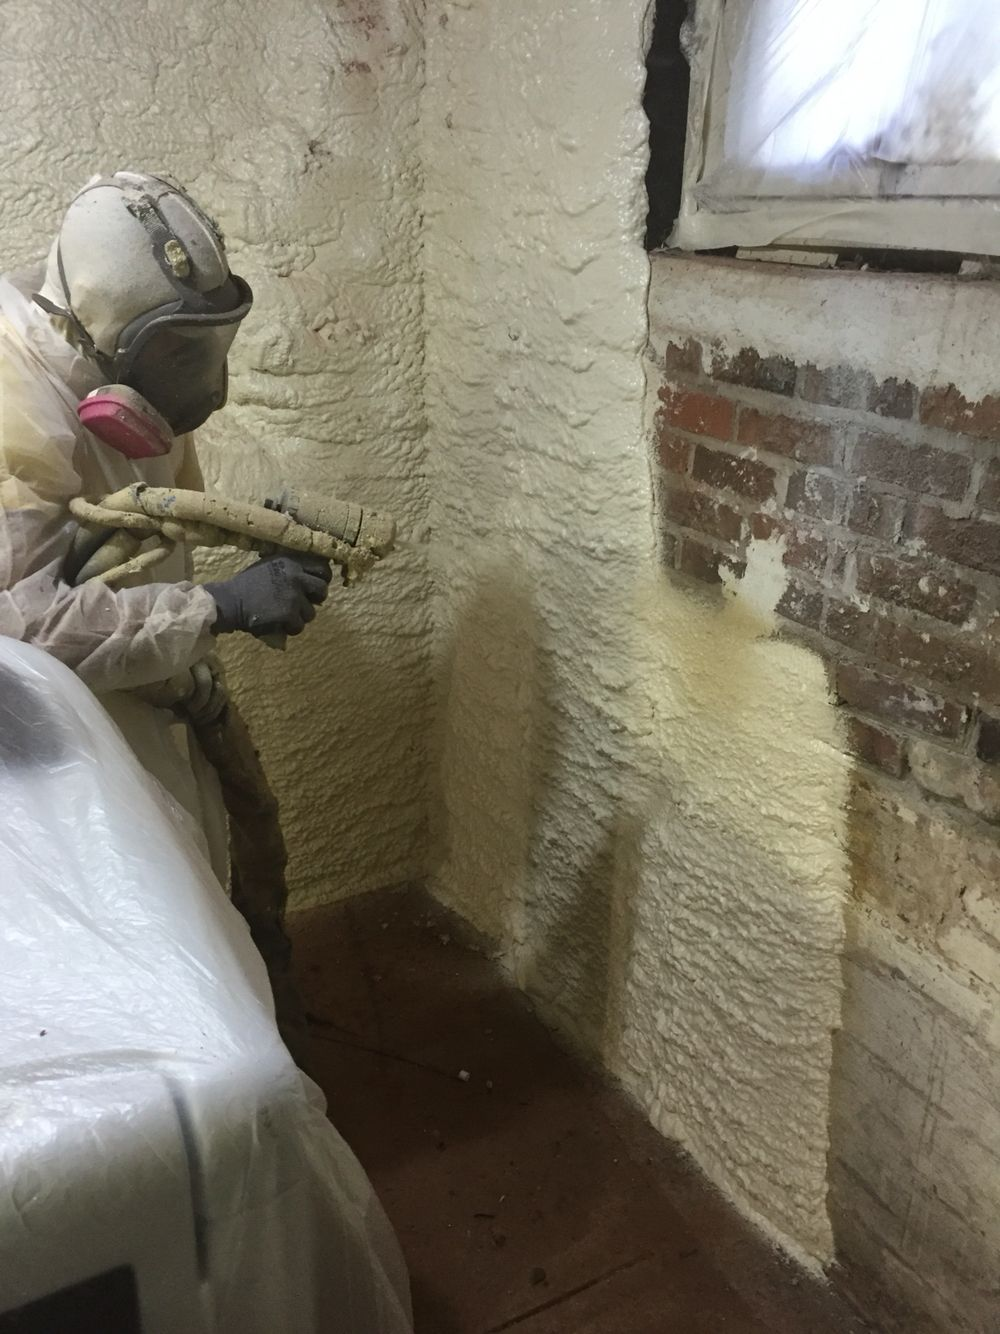 Spraying closed cell foam insulation on the basement walls